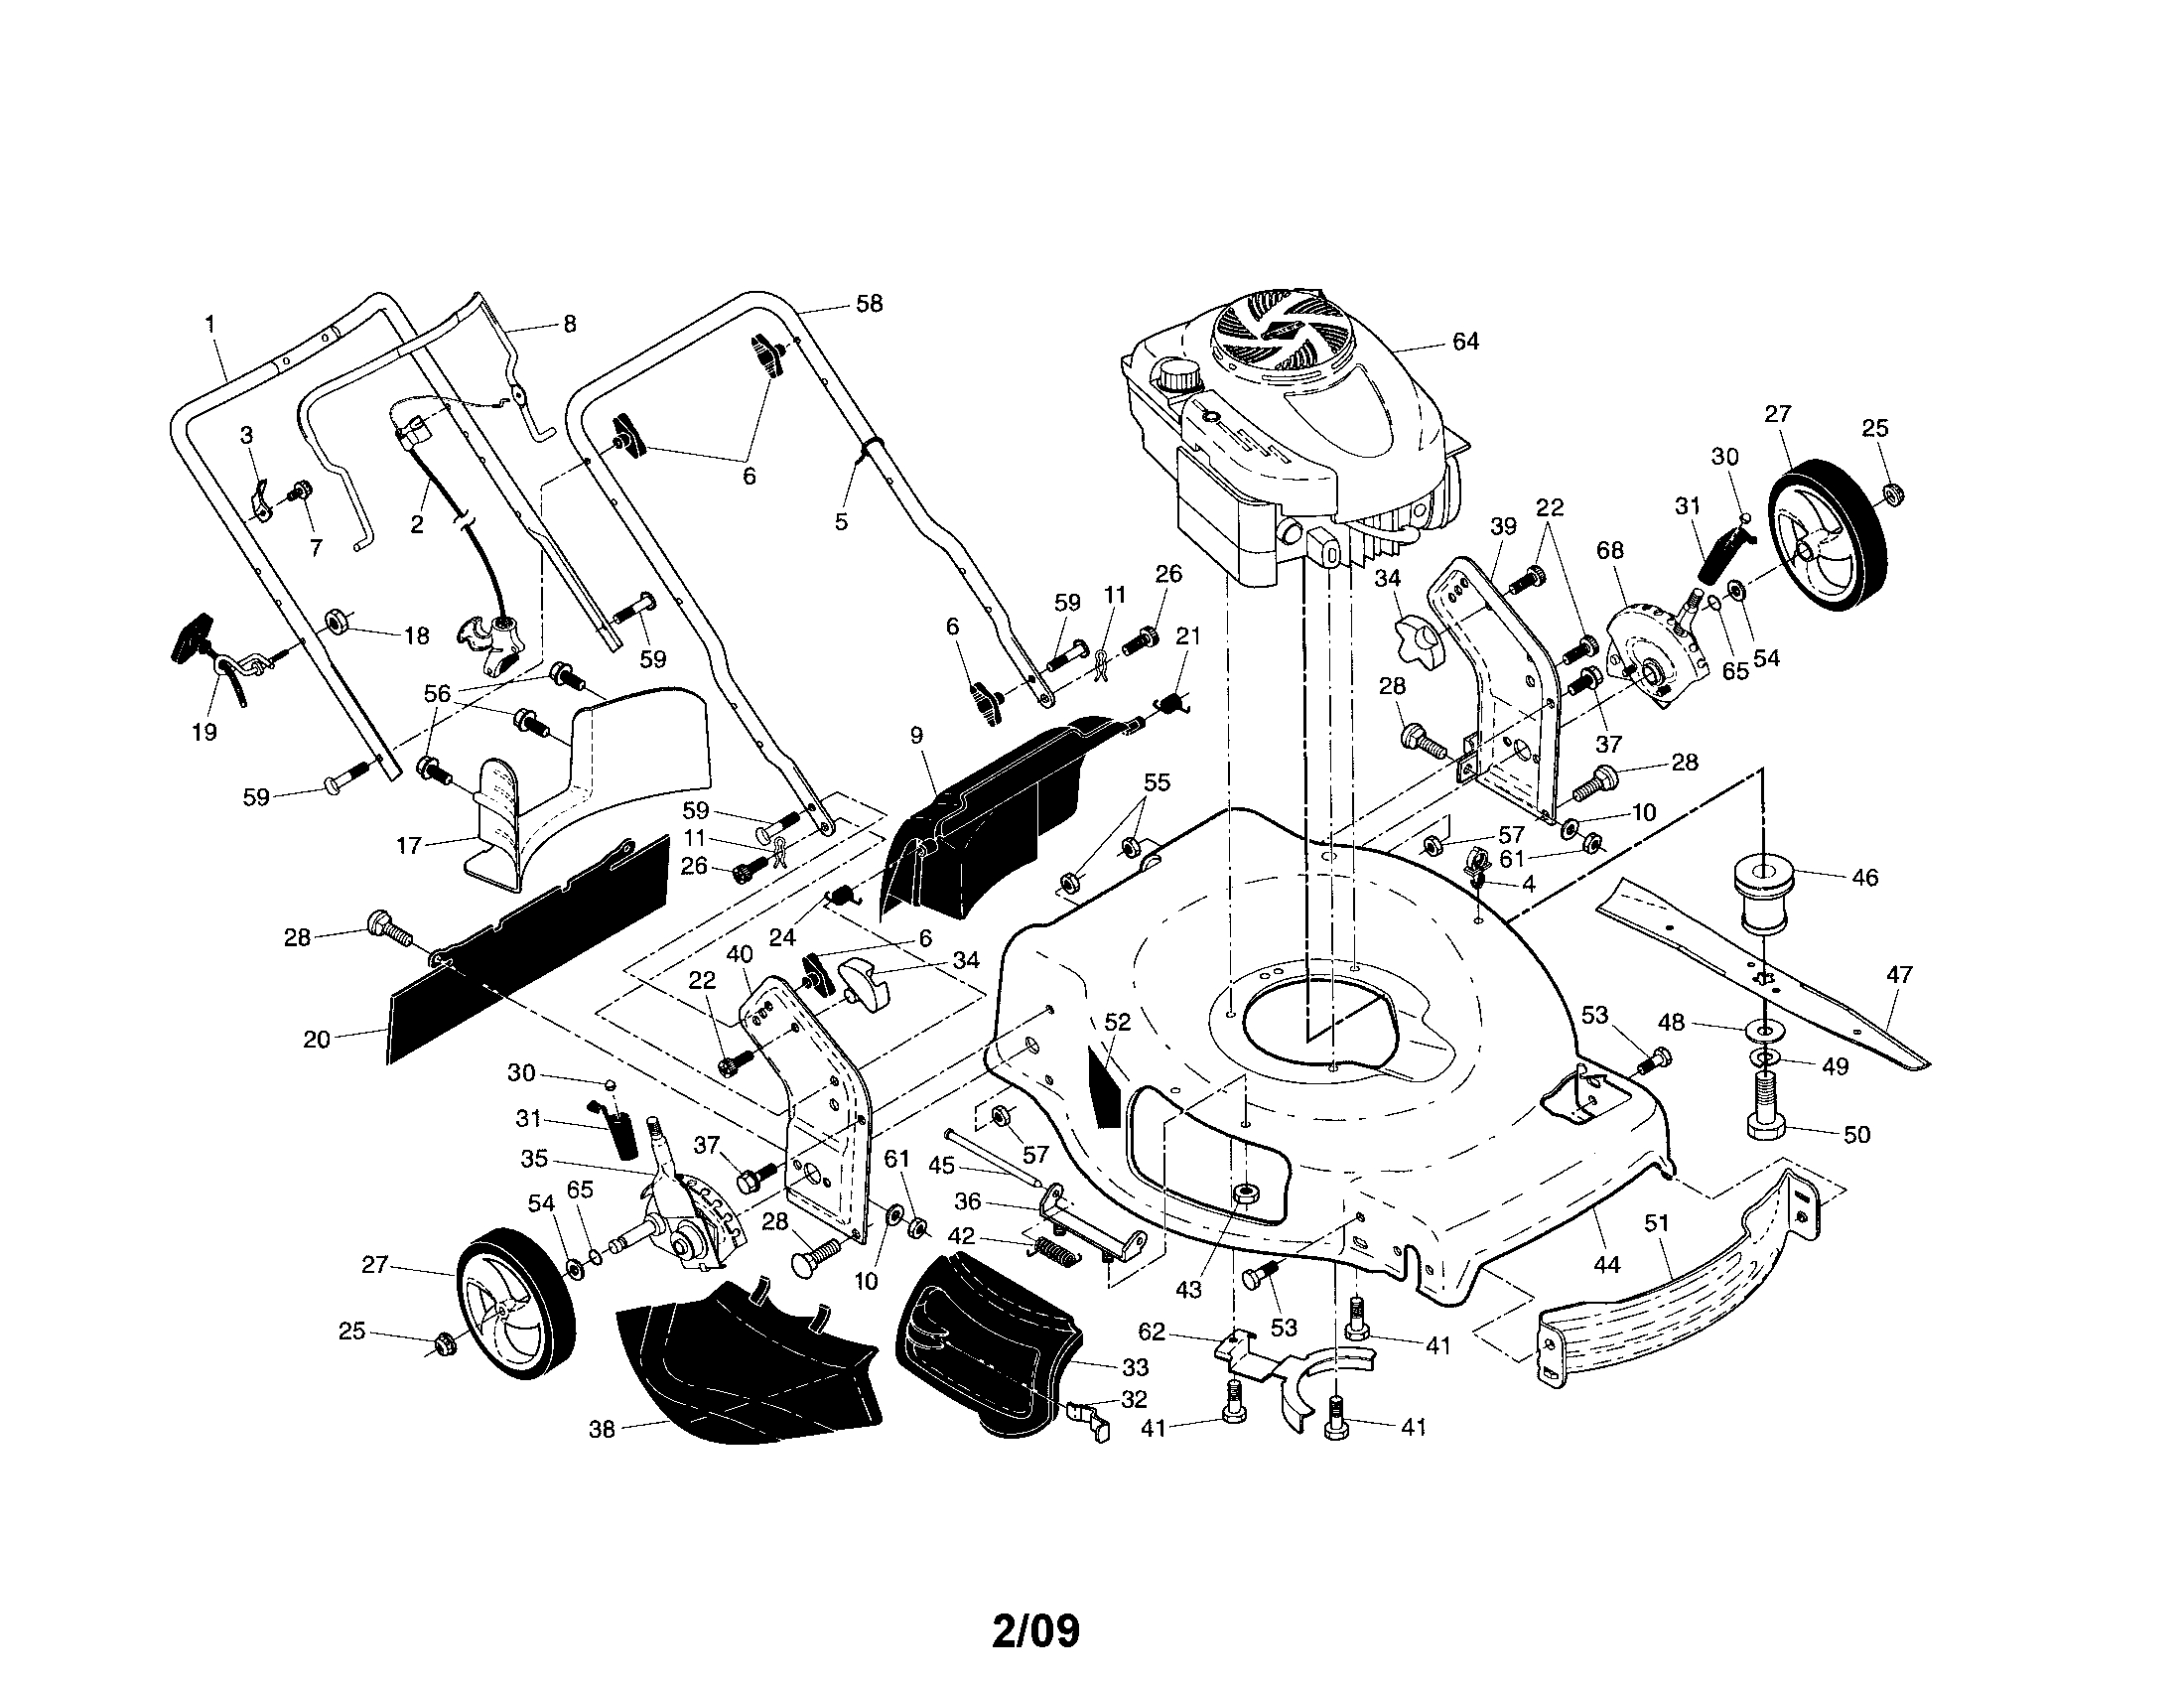 Craftsman Lawn Mower Engine Parts Diagram. Craftsman. Diy